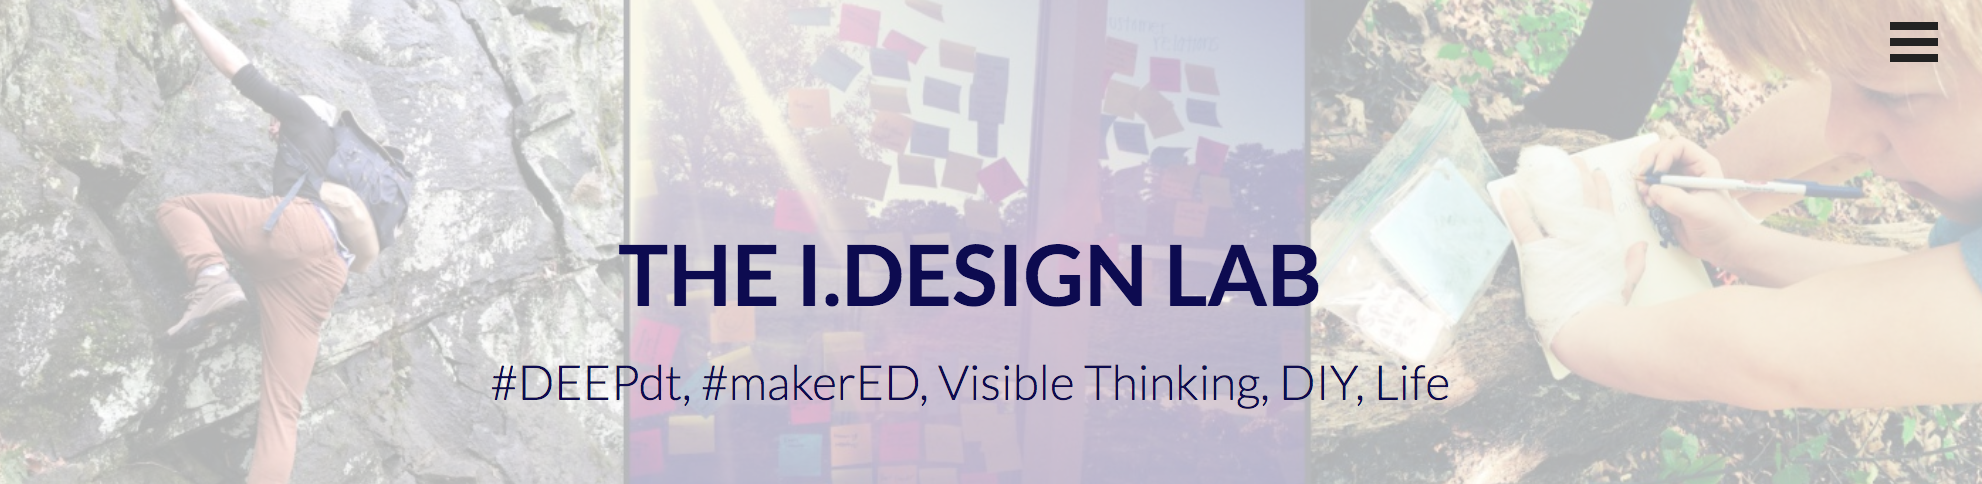 Click image to access all things i.Design Lab